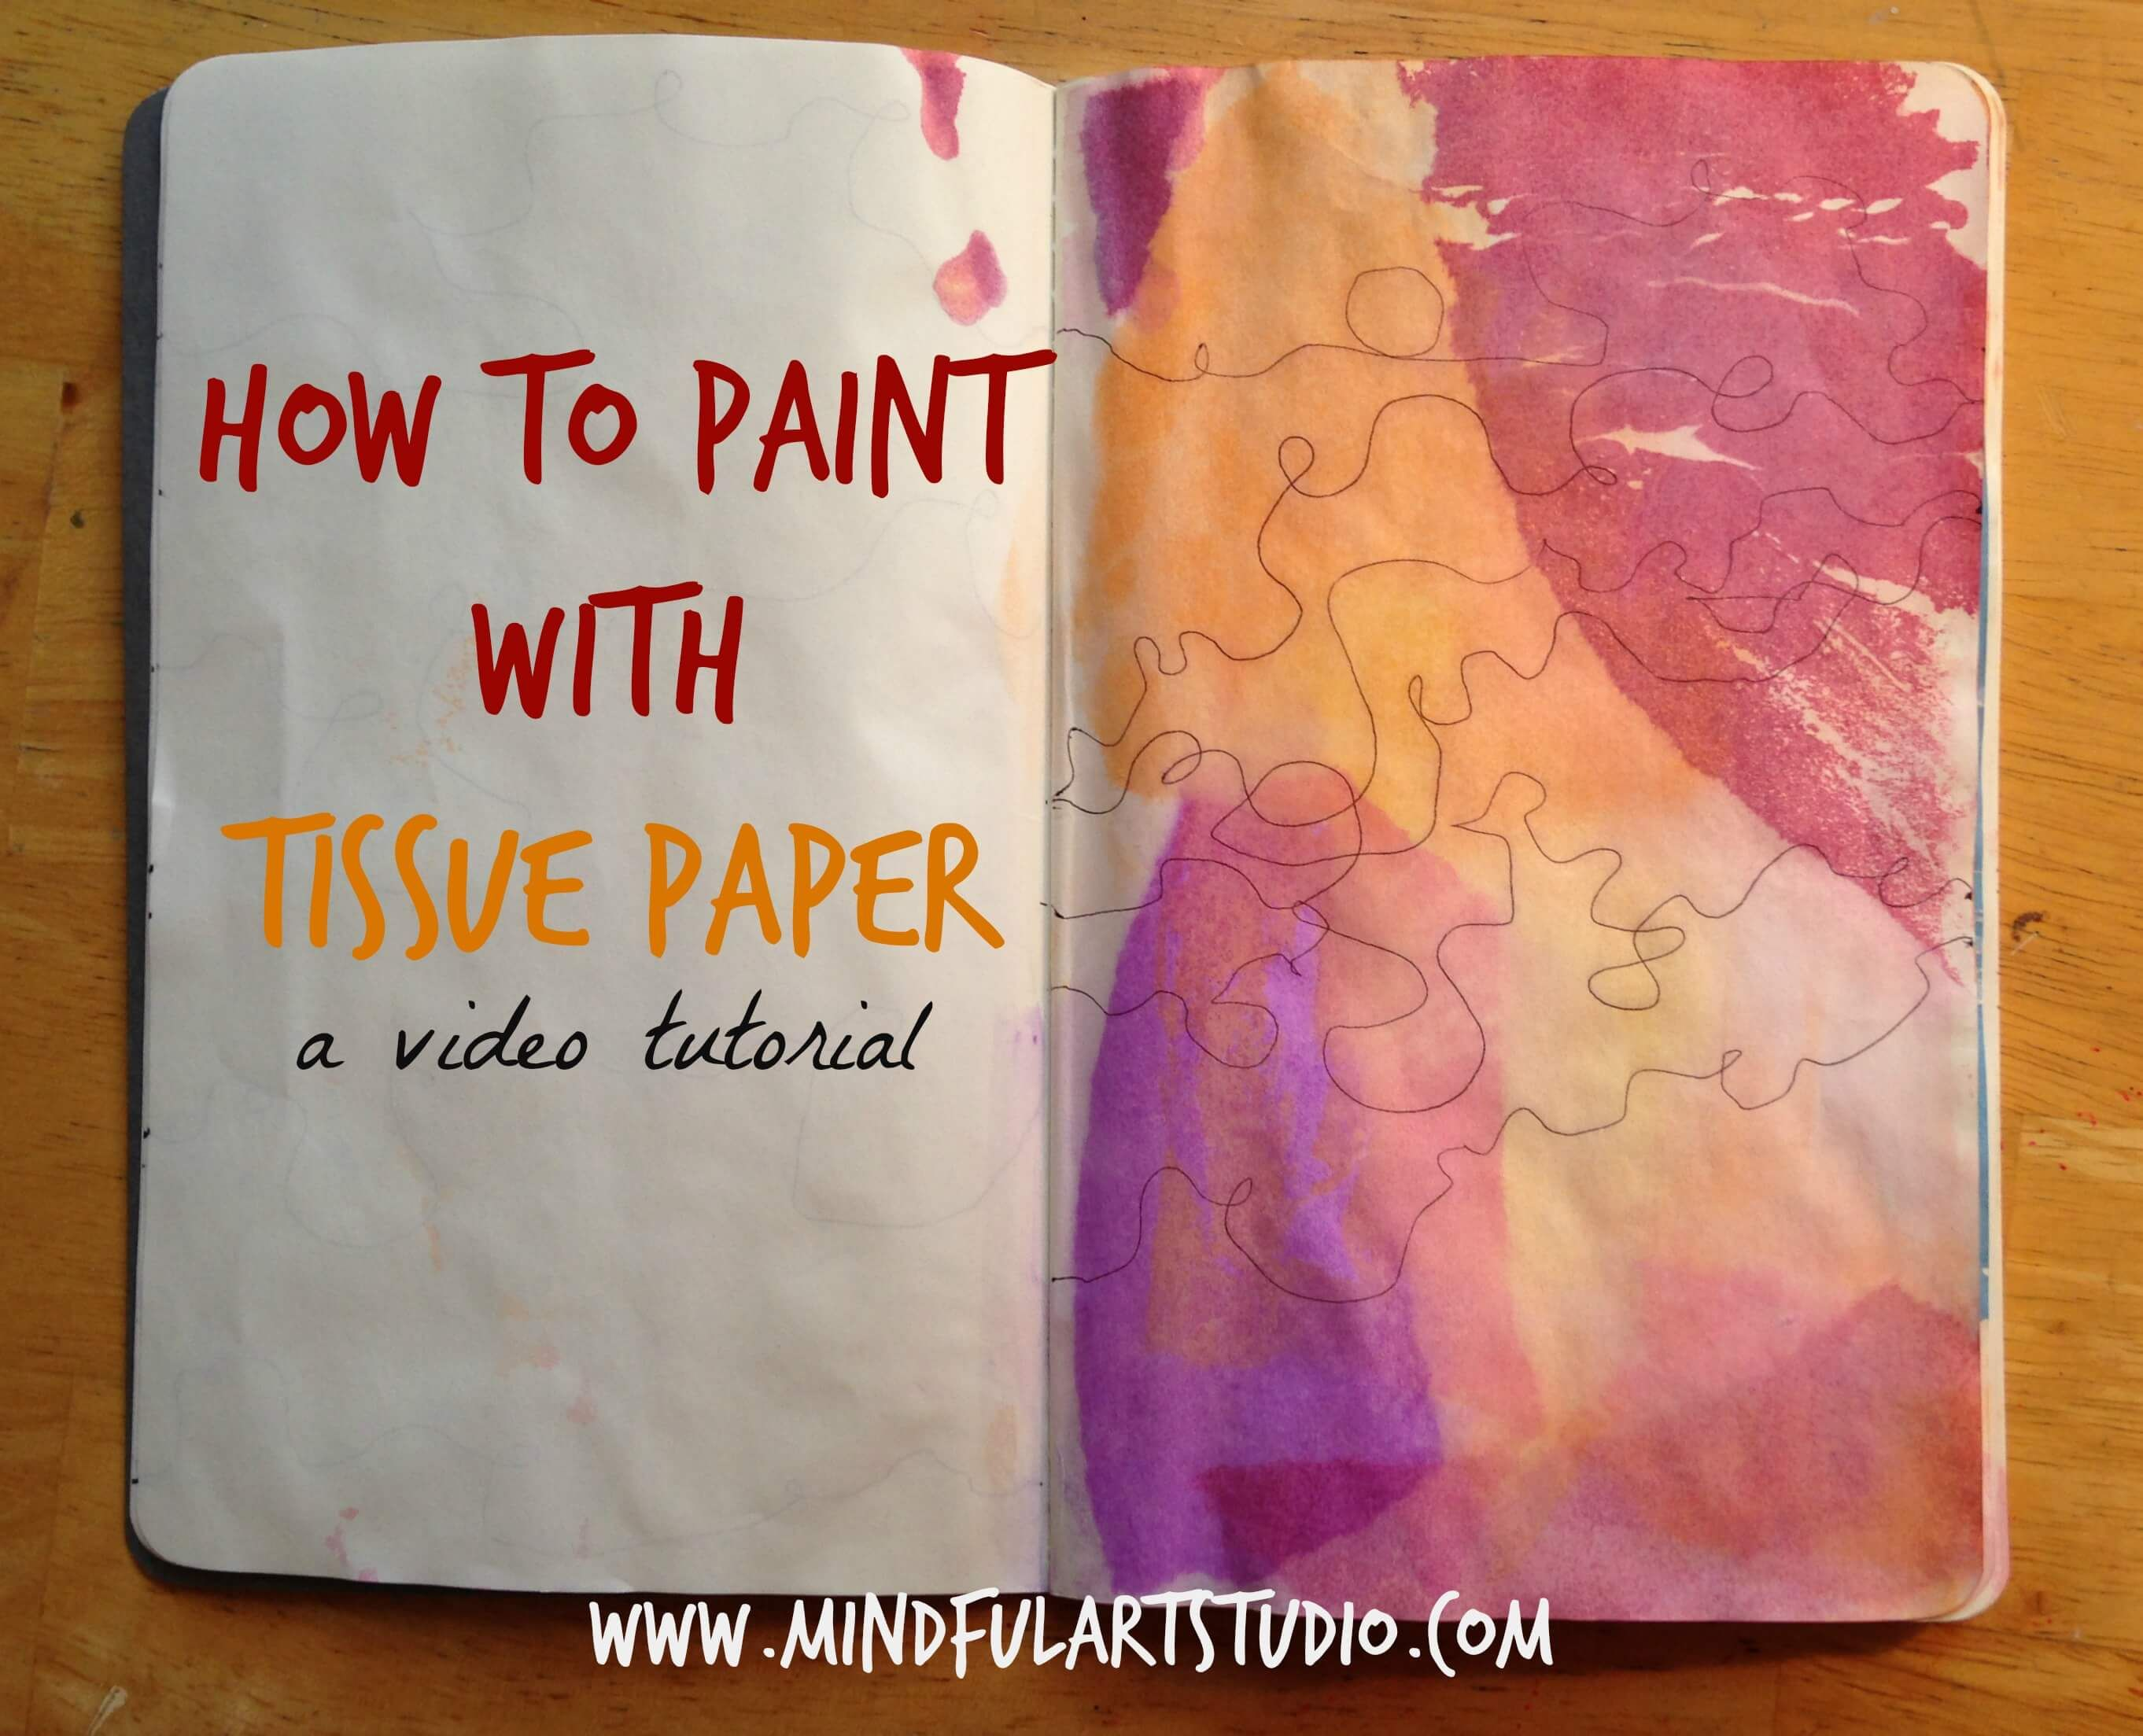 In this Art tutorial: Painting with Tissue Paper - you'll see that painting with tissue paper is easy and fun.